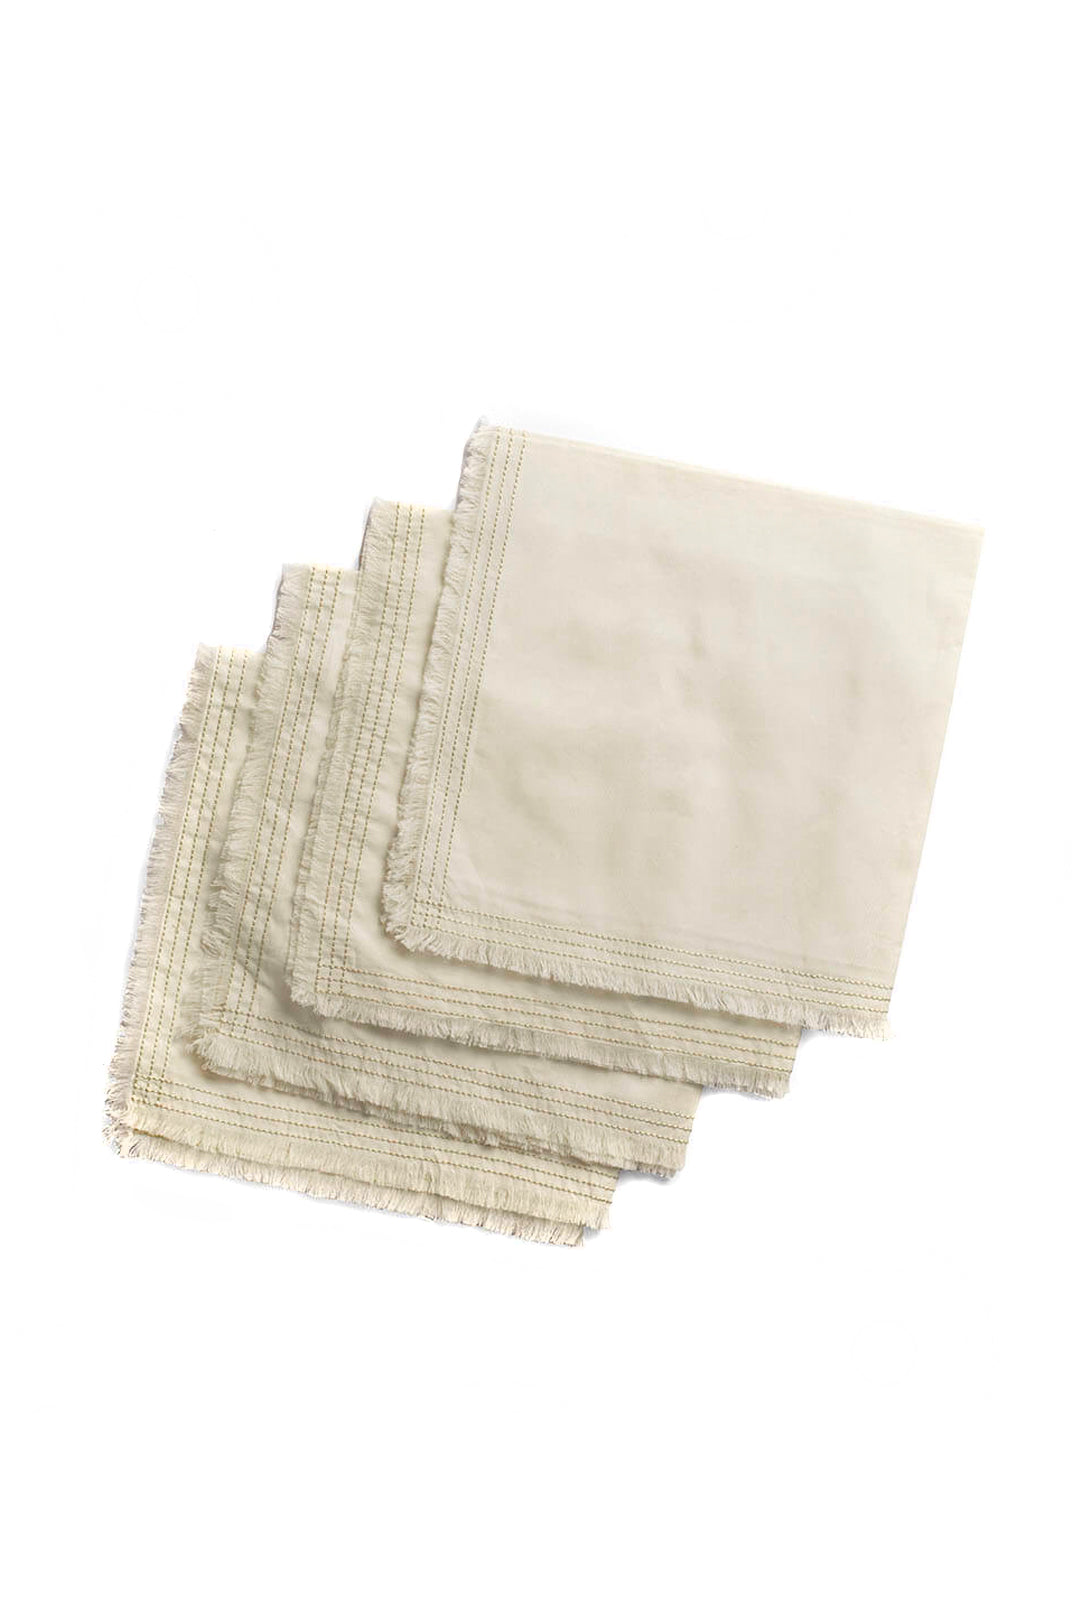 Organic Cotton Percale Napkin - Cream, Set of 4